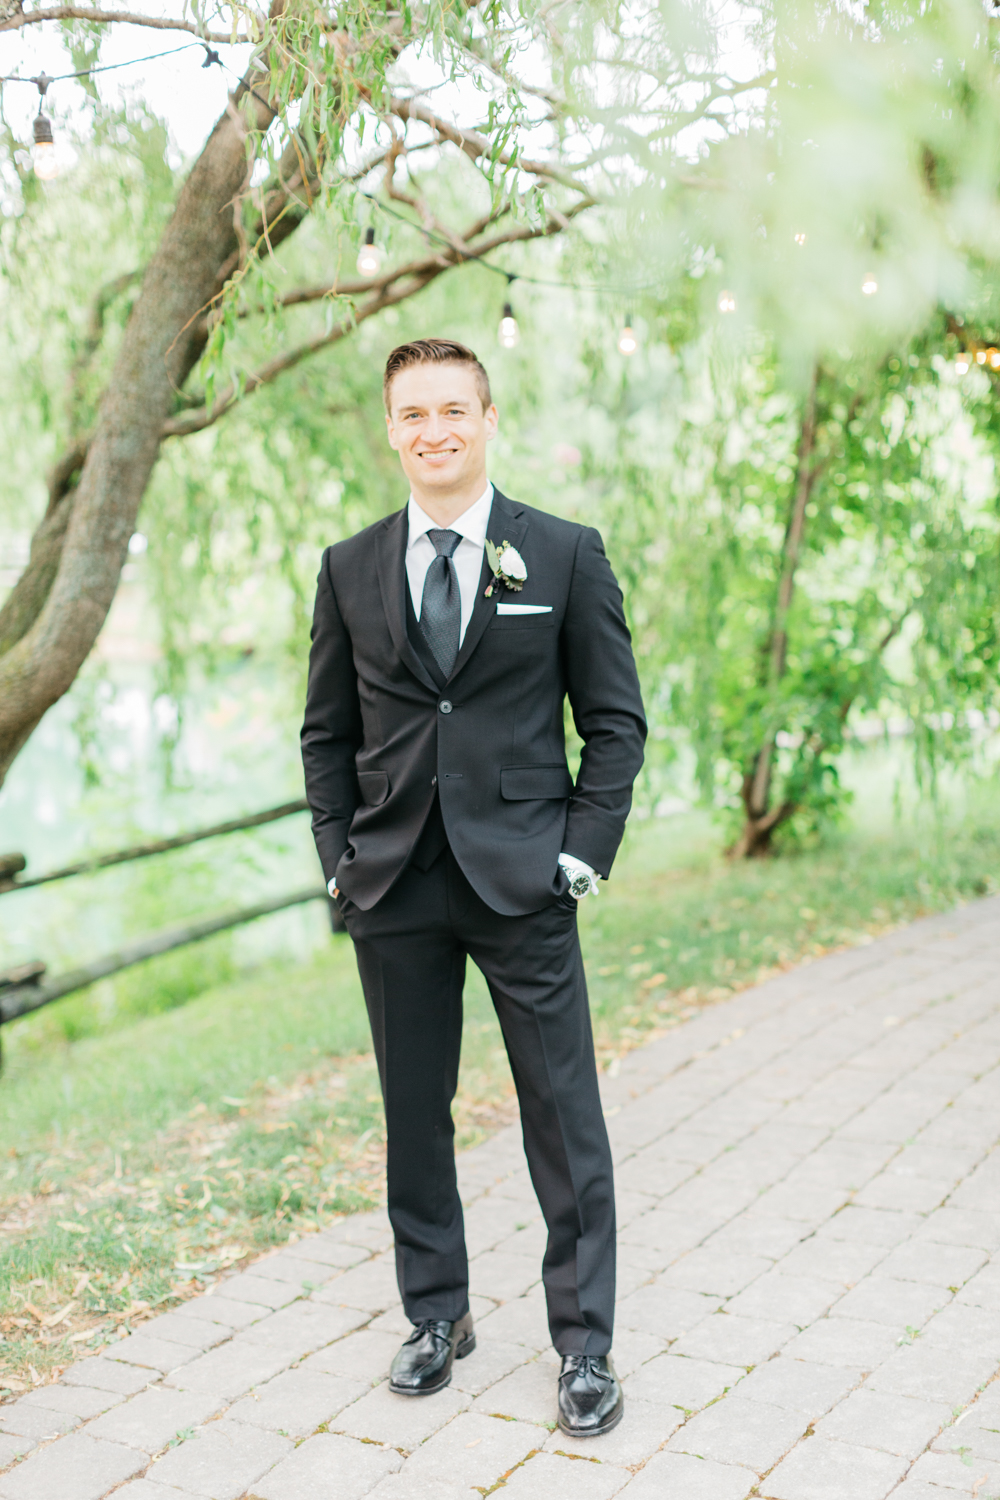 Groom portrait at Kurtz Orchard Vineyard